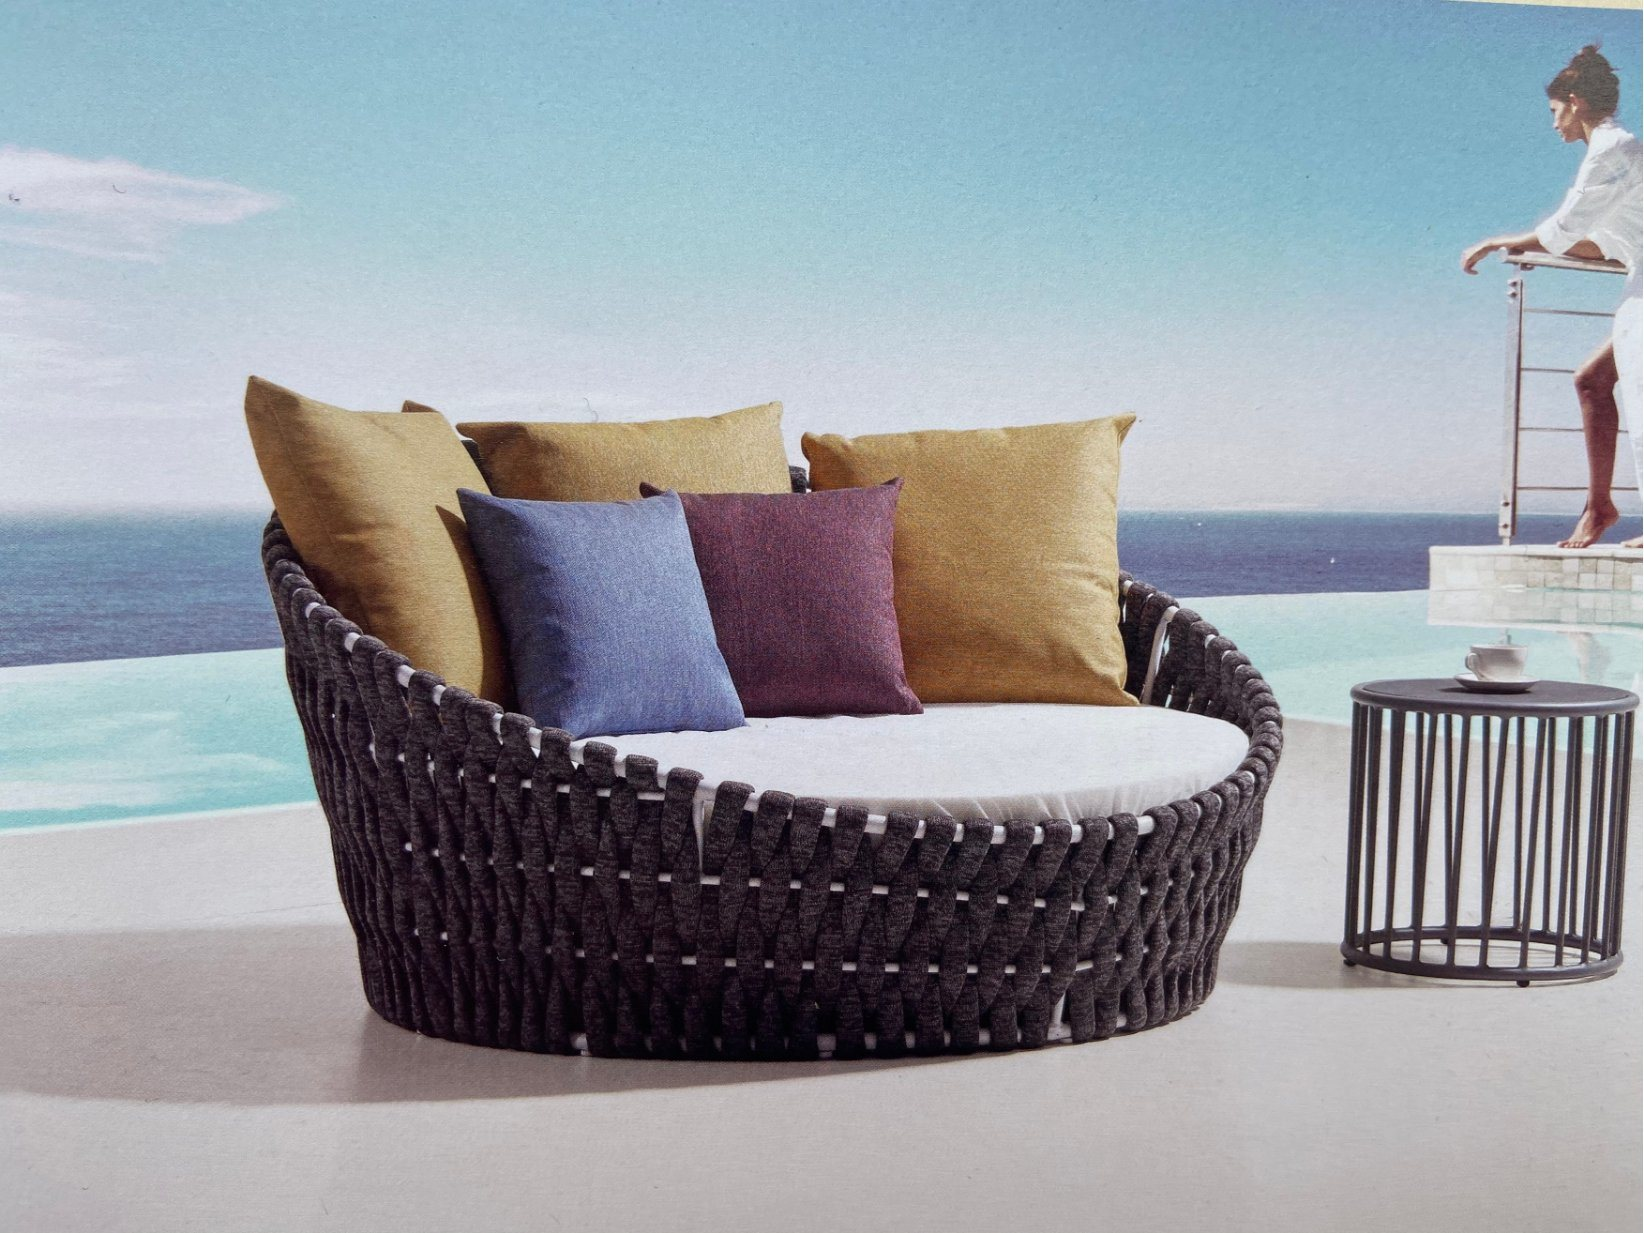 China 2020 Hot Sale Modern Rope Rattan Round Daybed Set For Outdoor Furniture Photos Pictures Made In China Com